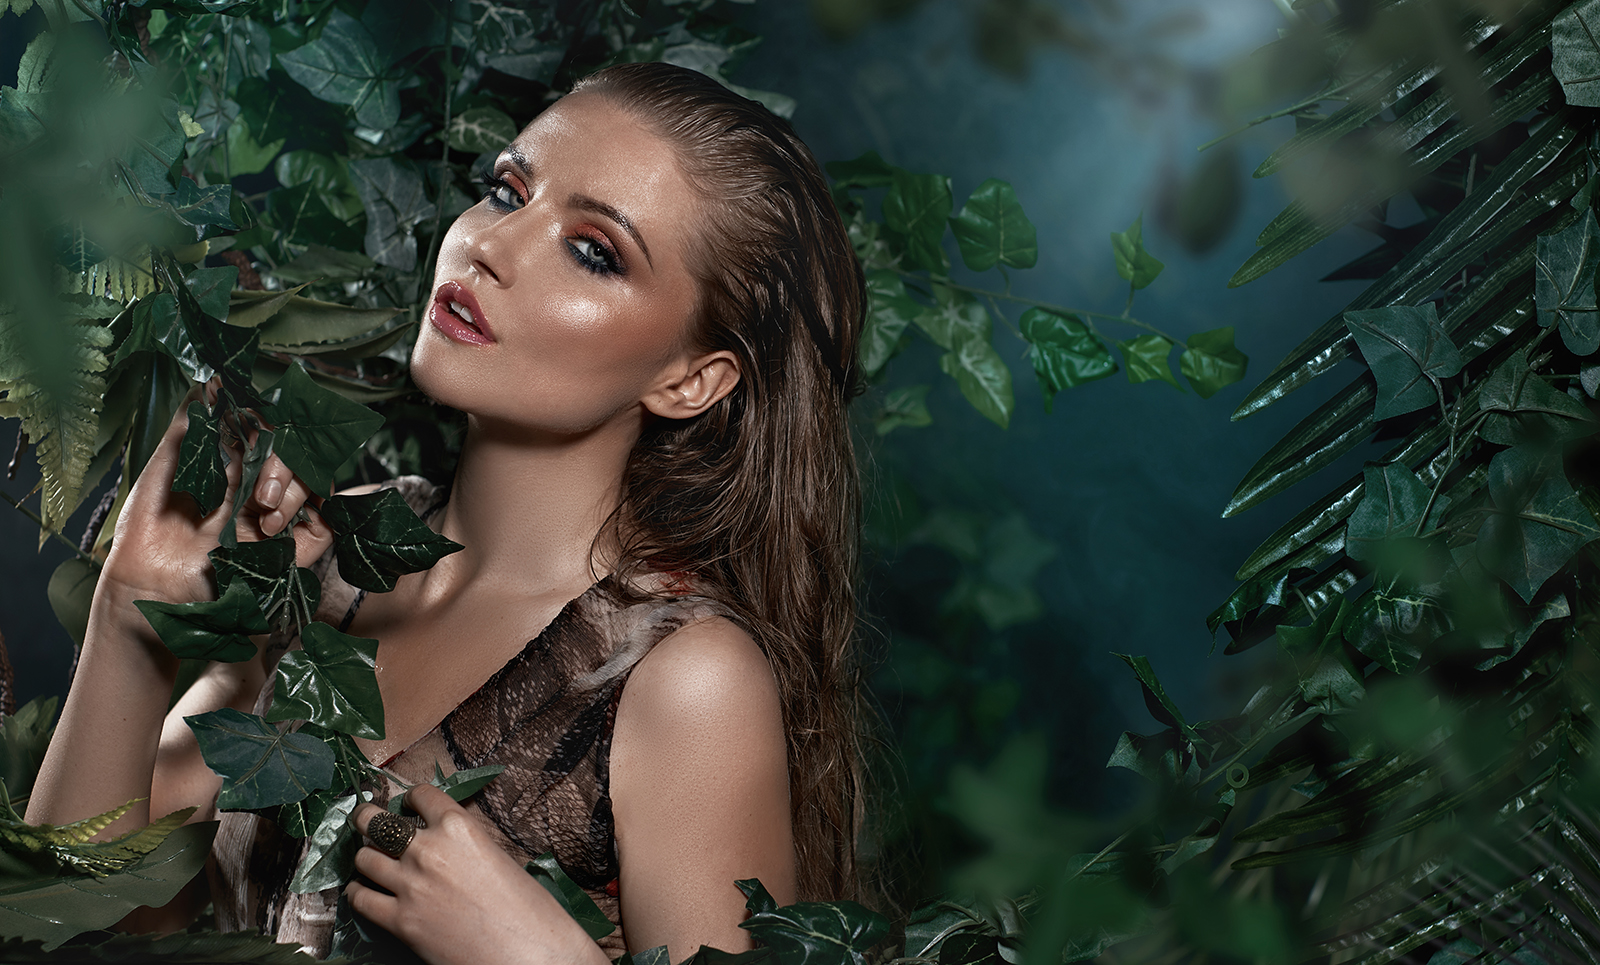 skincare-hair-wet-woman-leavning-on-leaves-from-tree